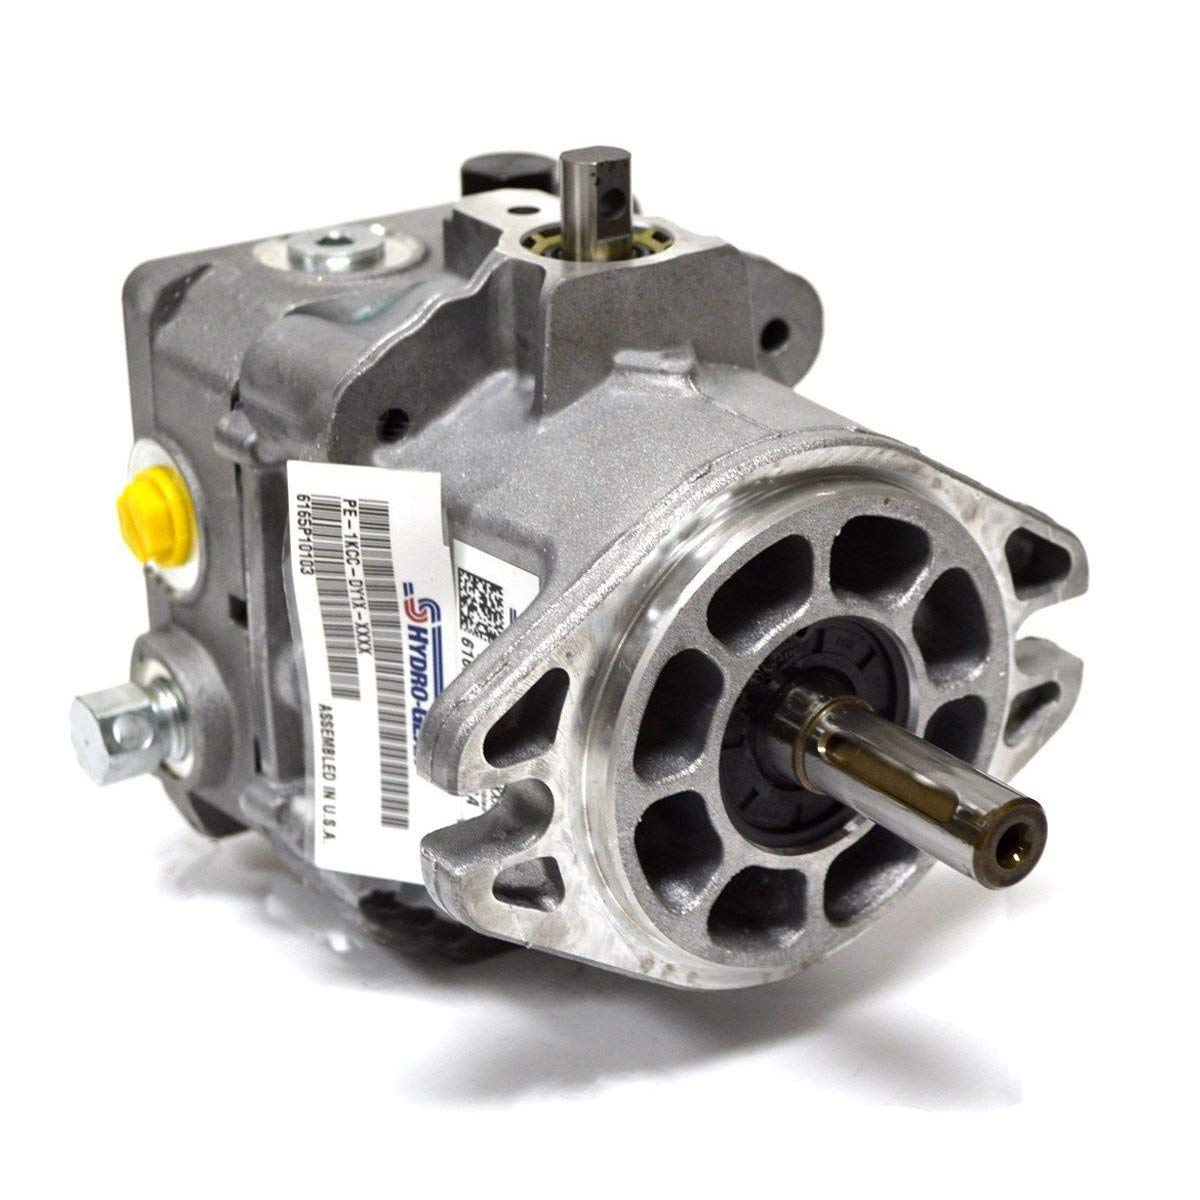 Hydro Gear Replacement Pump 10cc (Right) for Encore Prowler Lawn Mower & Others / 583491, PG-1HCC-DY1X-XXXX